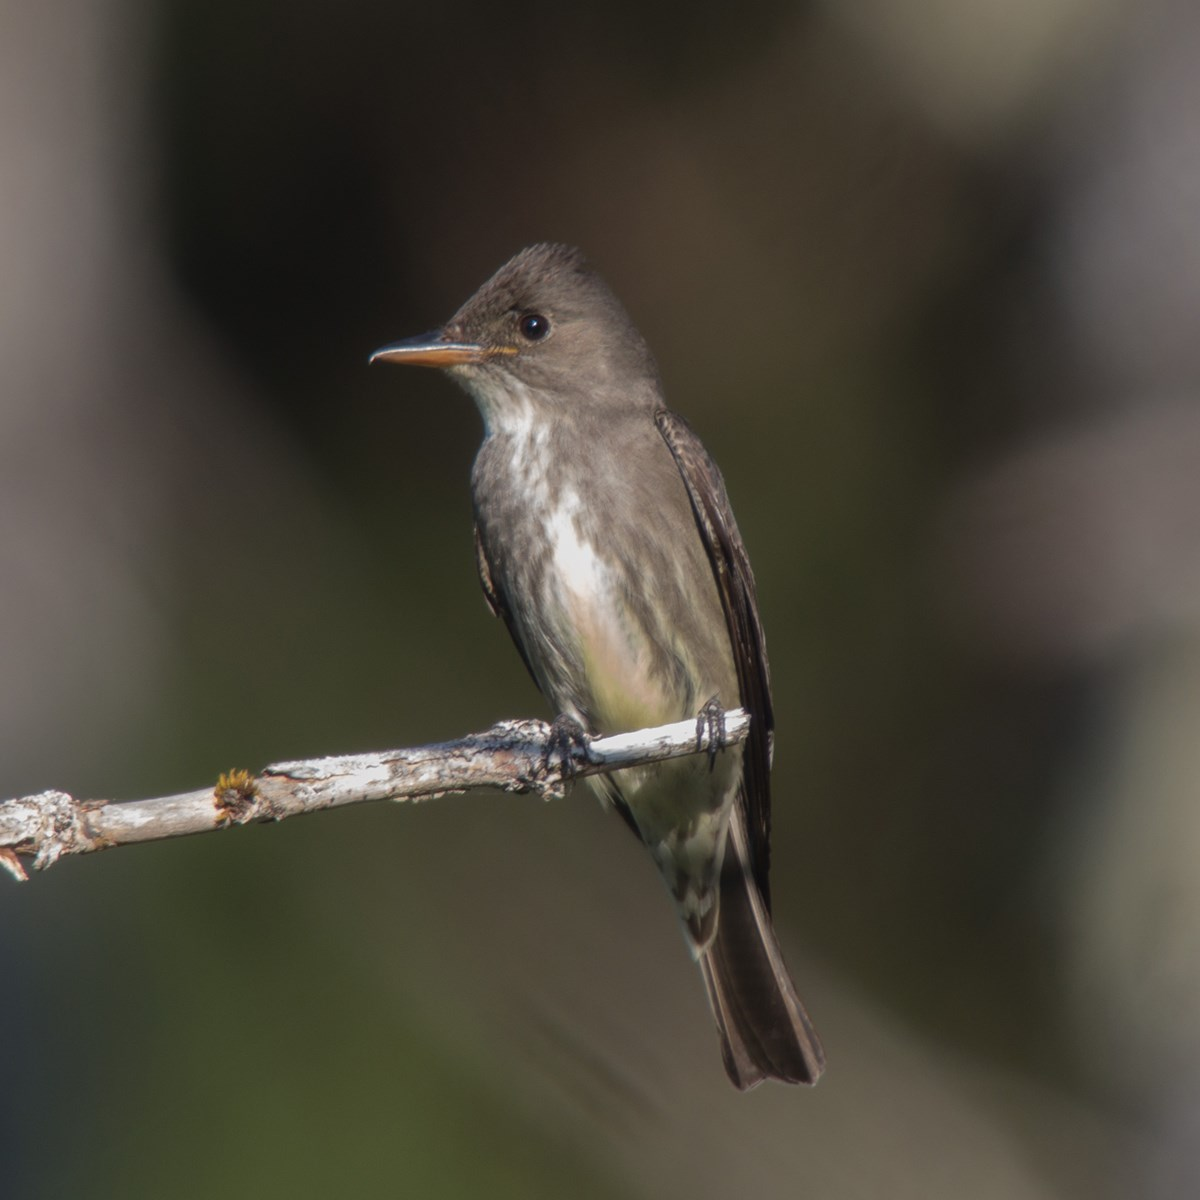 Frontal view of an Olive sided flycatcher bird perched on a brach